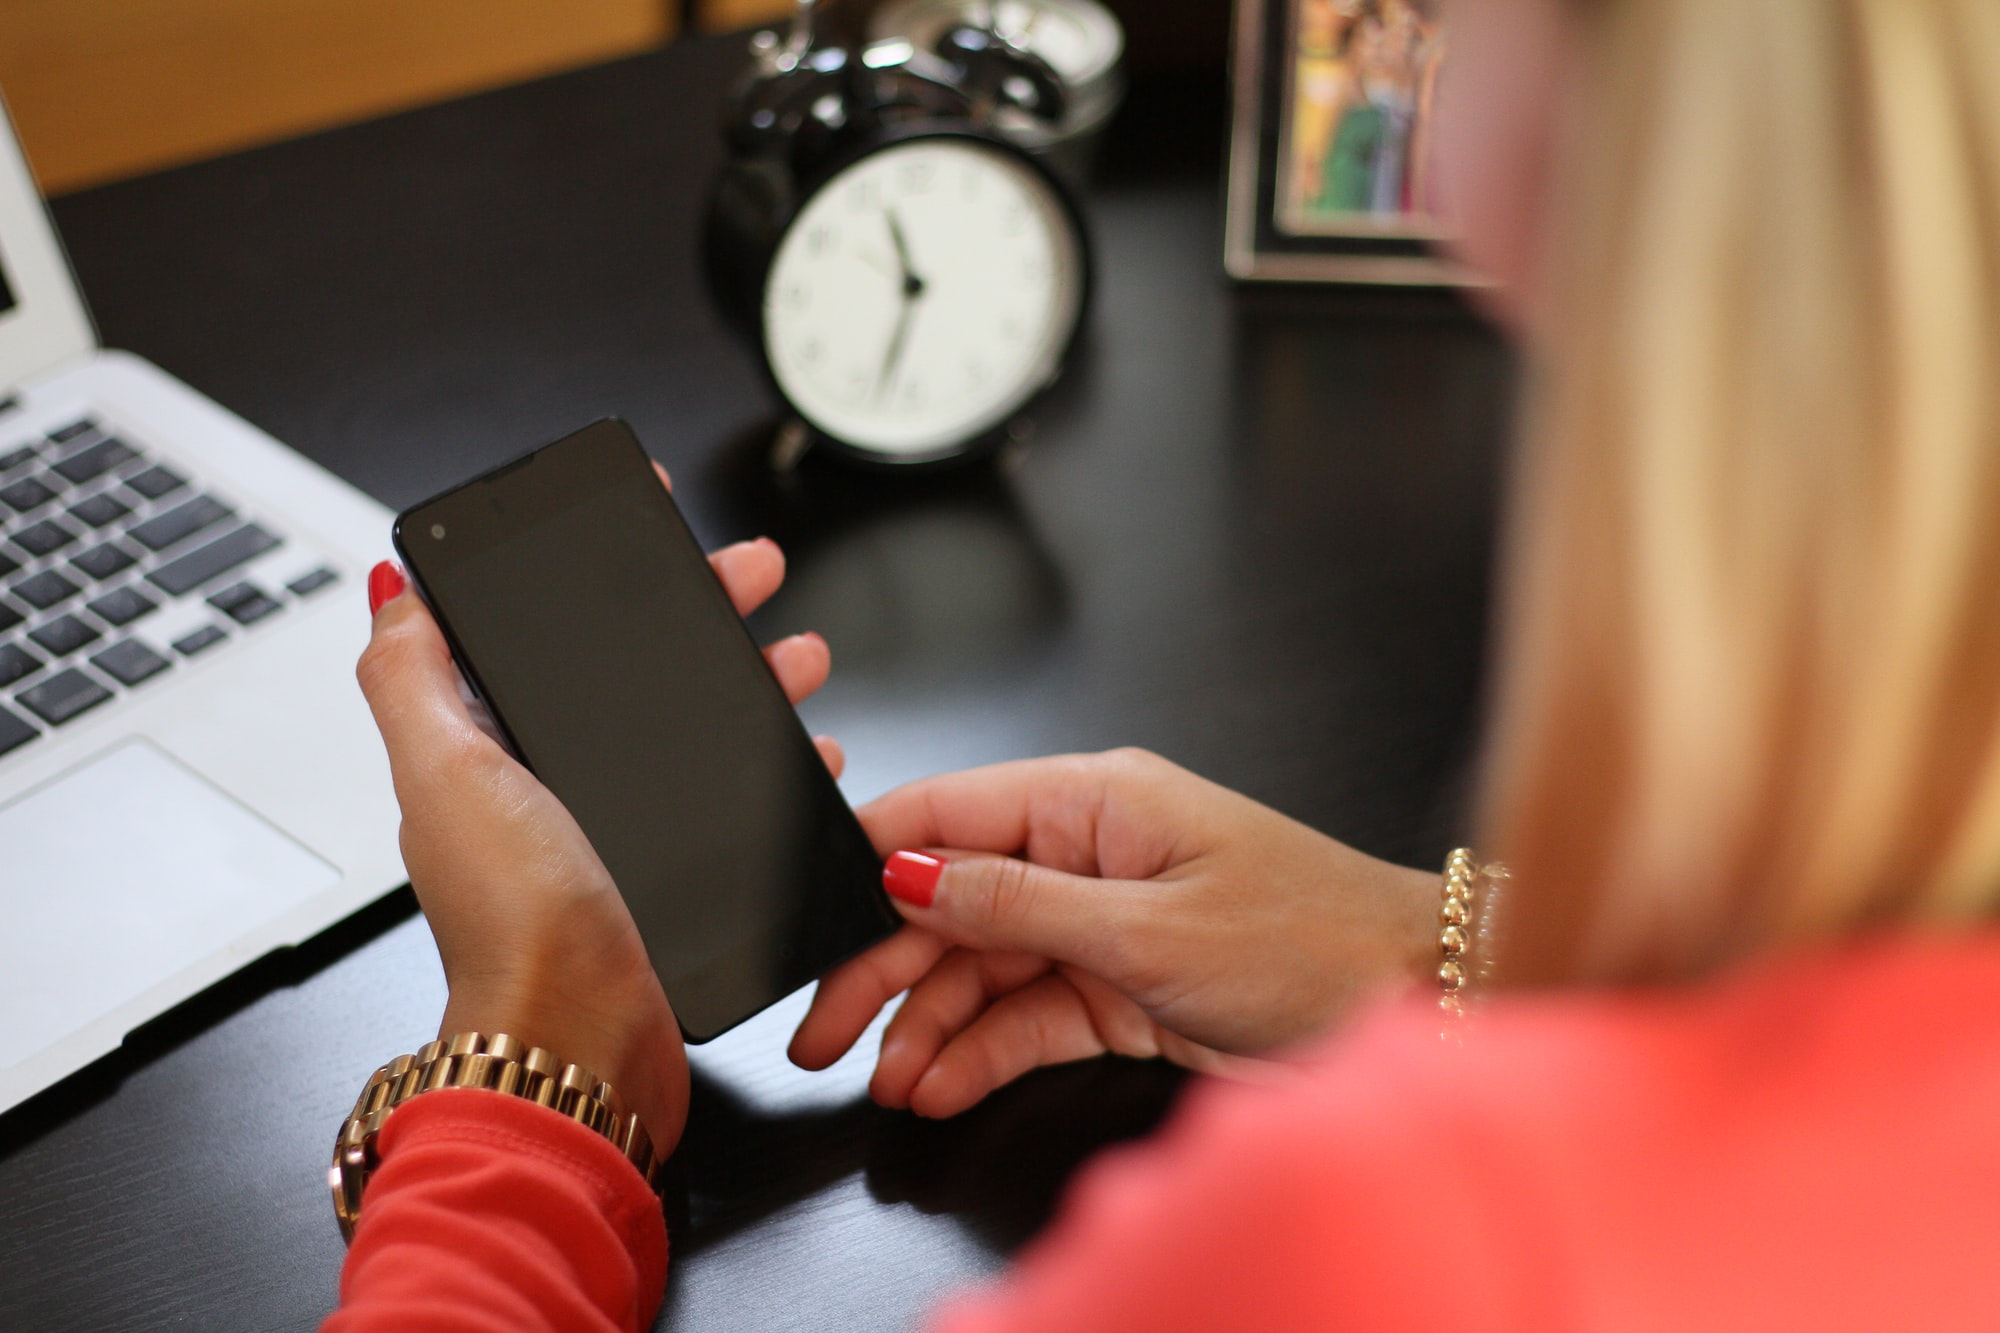 Woman with a phone at a desk